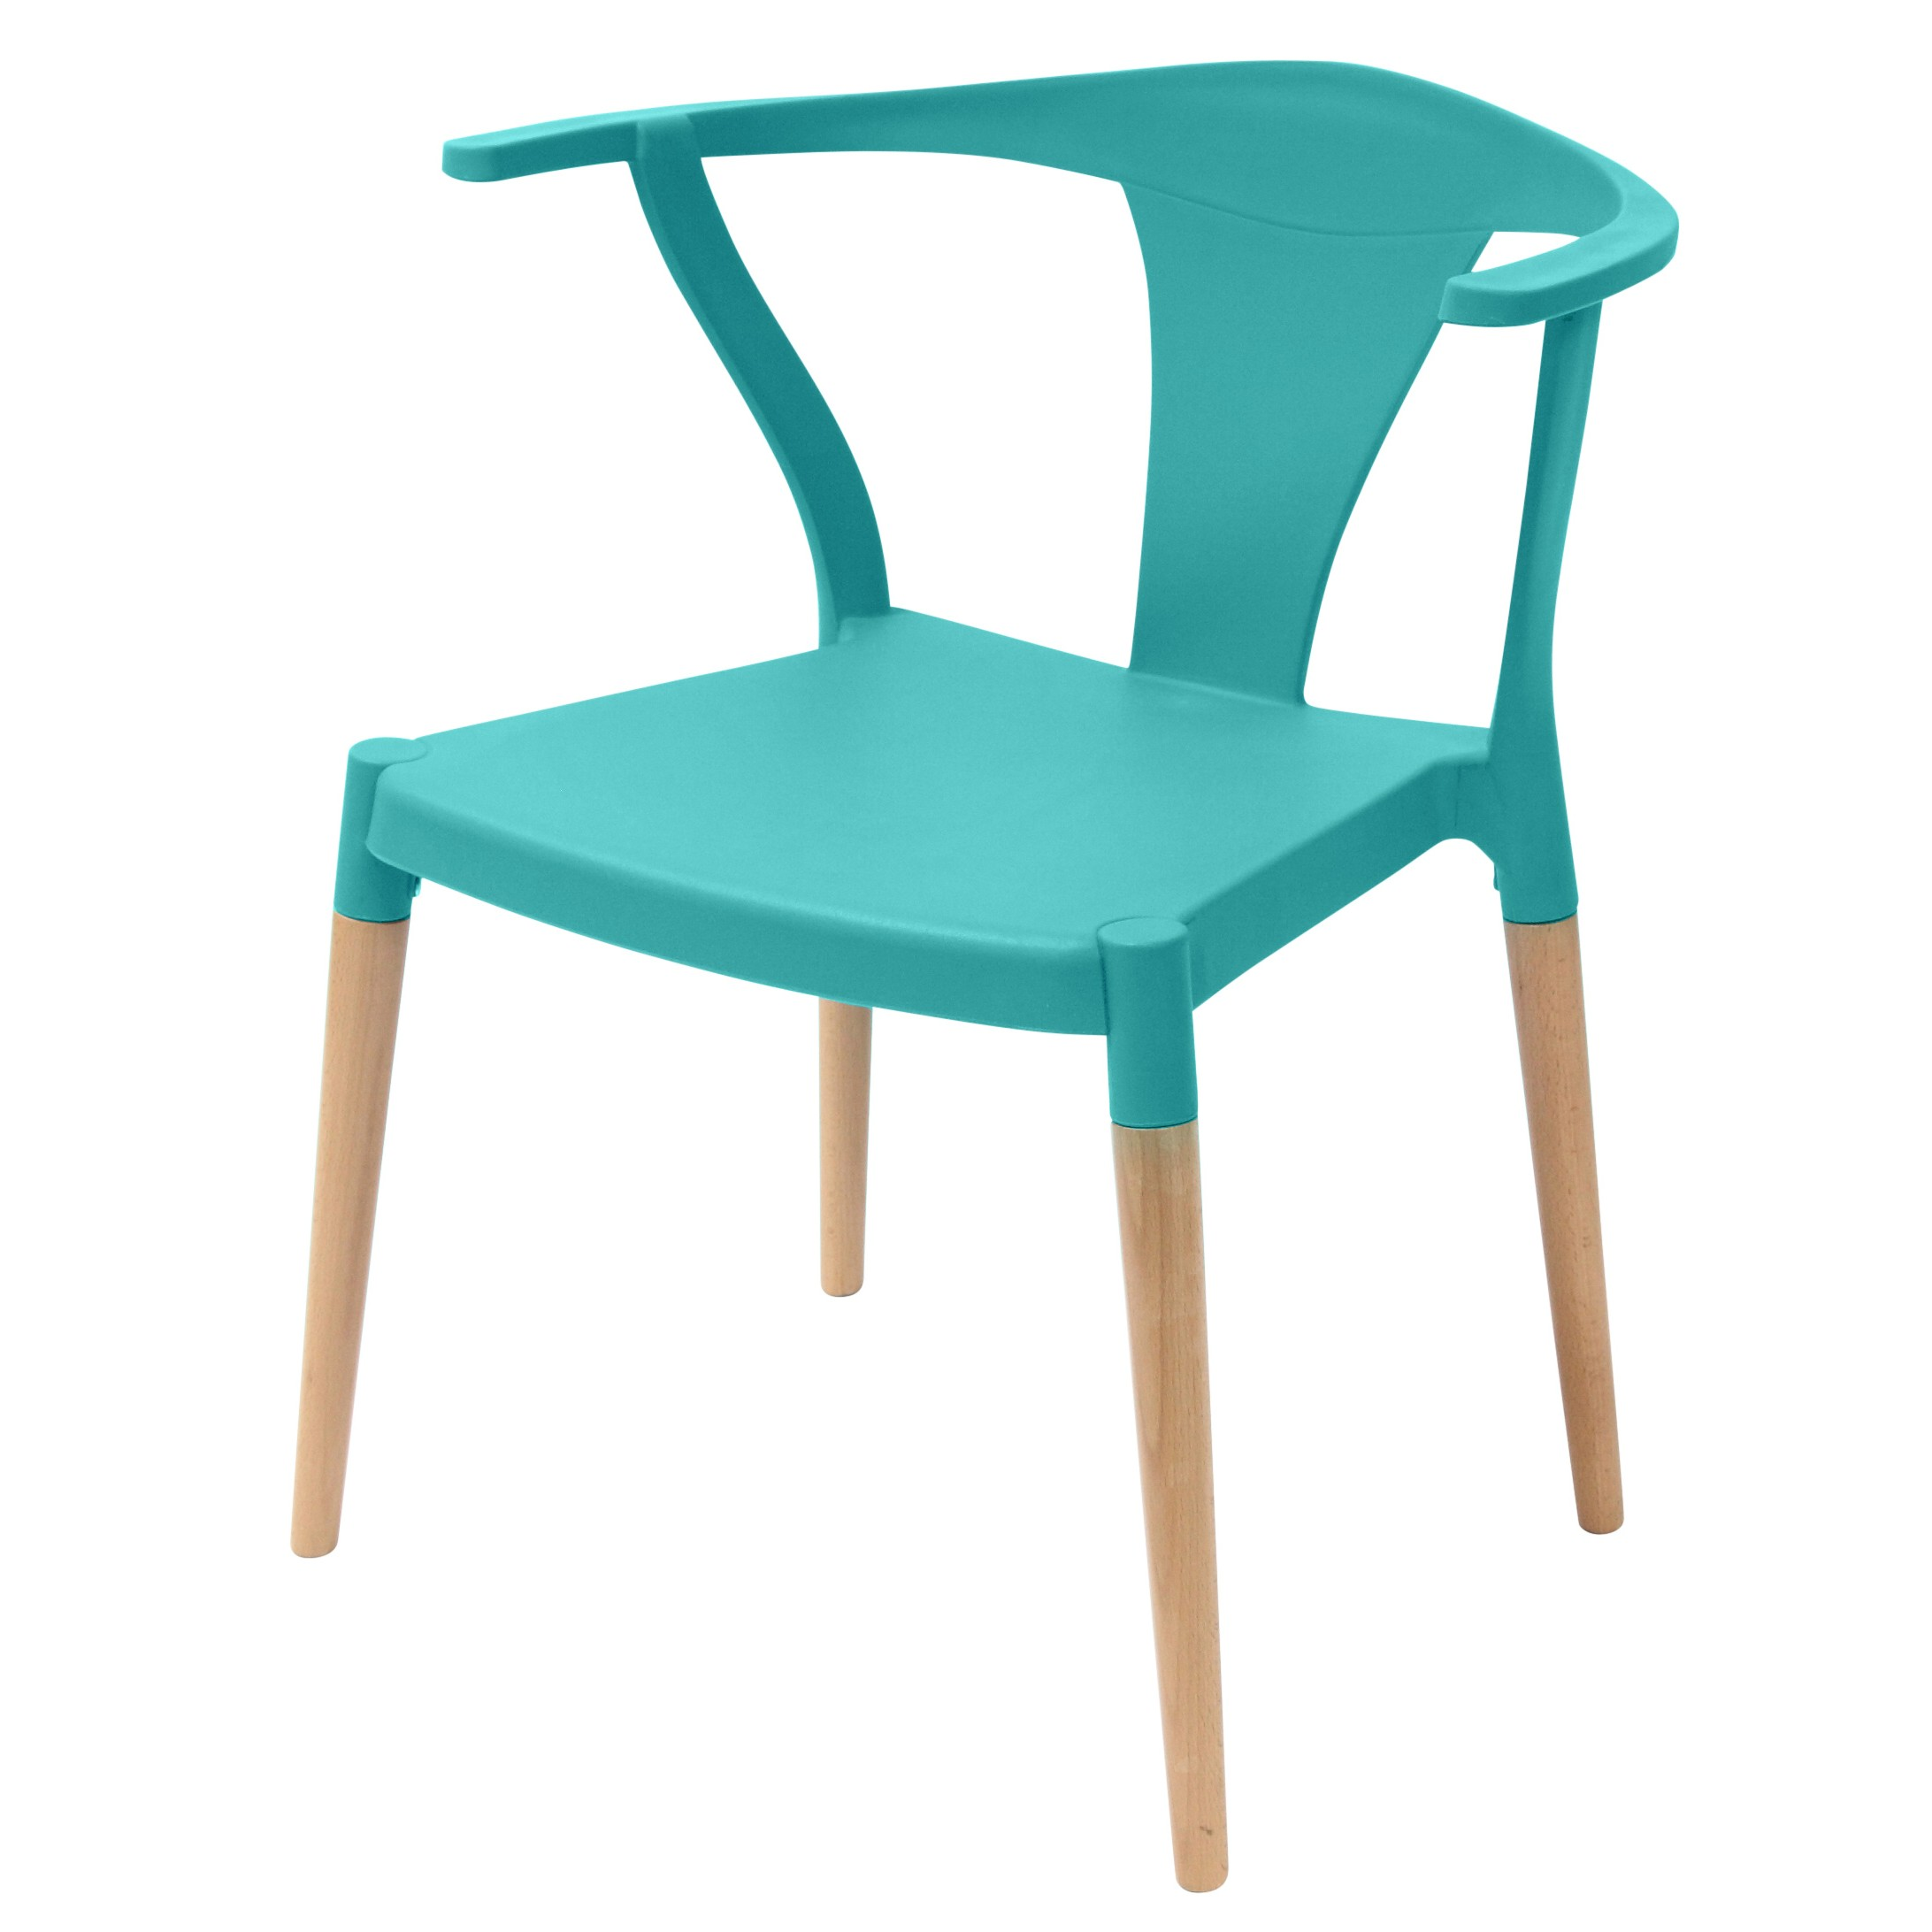 Turquoise Side Chair Icon Series Turquoise Modern Accent Dining Arm Chair Beech